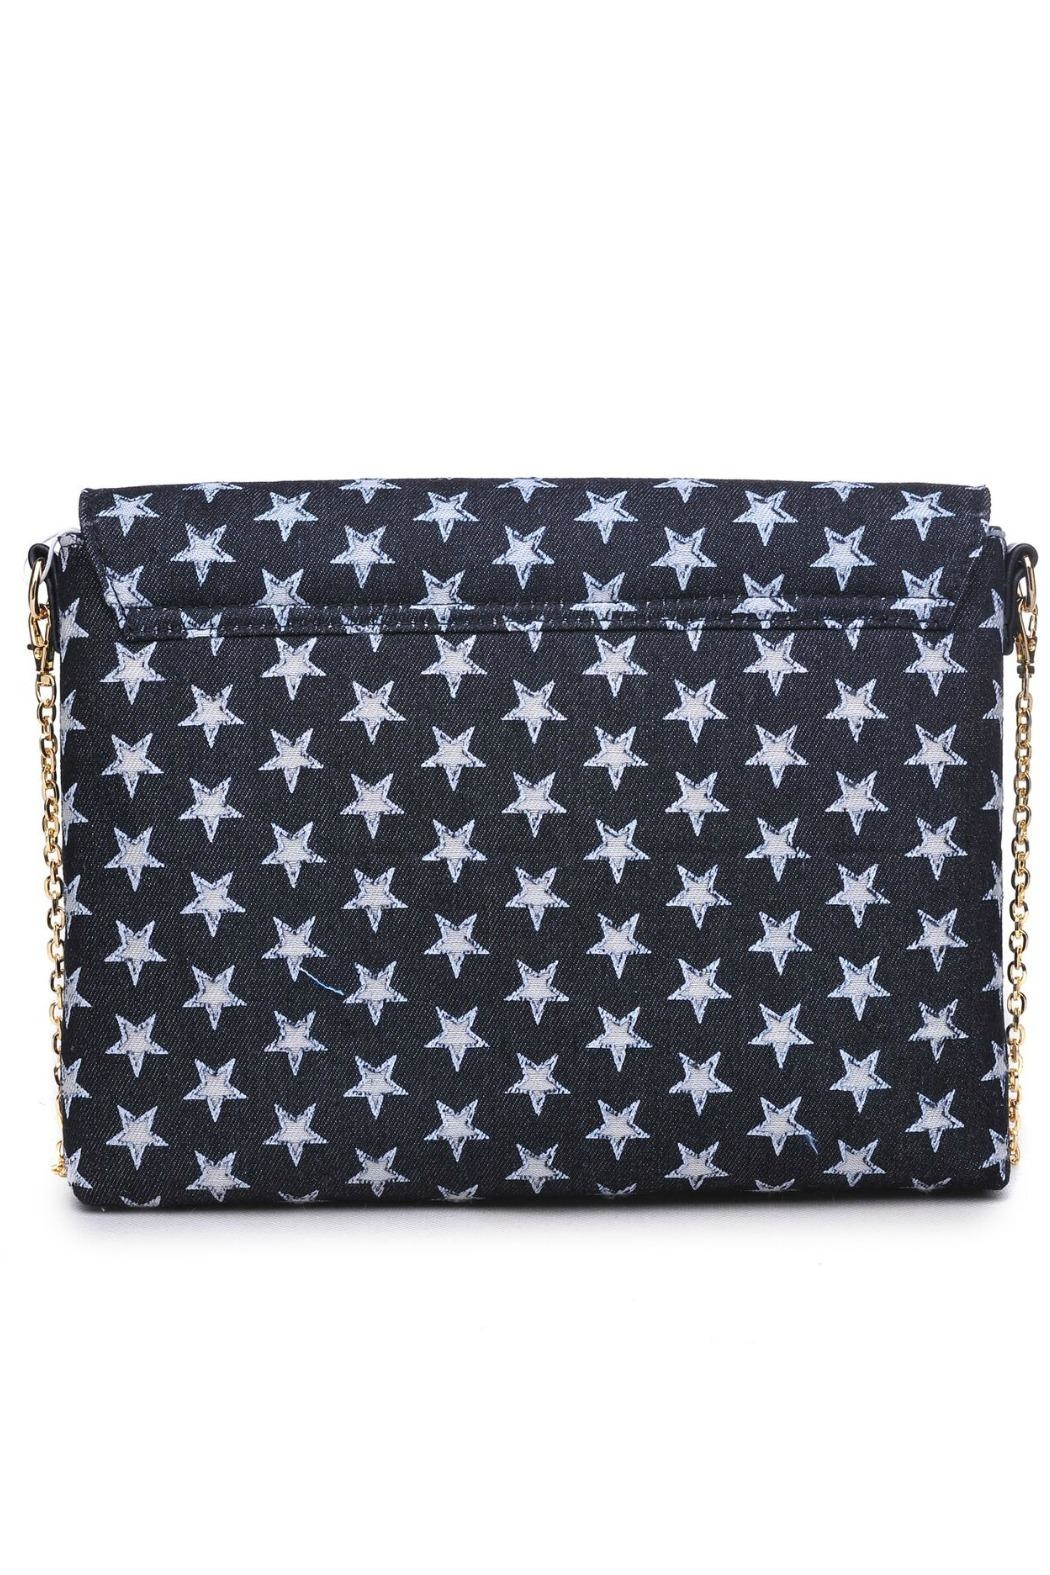 Urban Expressions Mercury Denim Clutch - Front Full Image